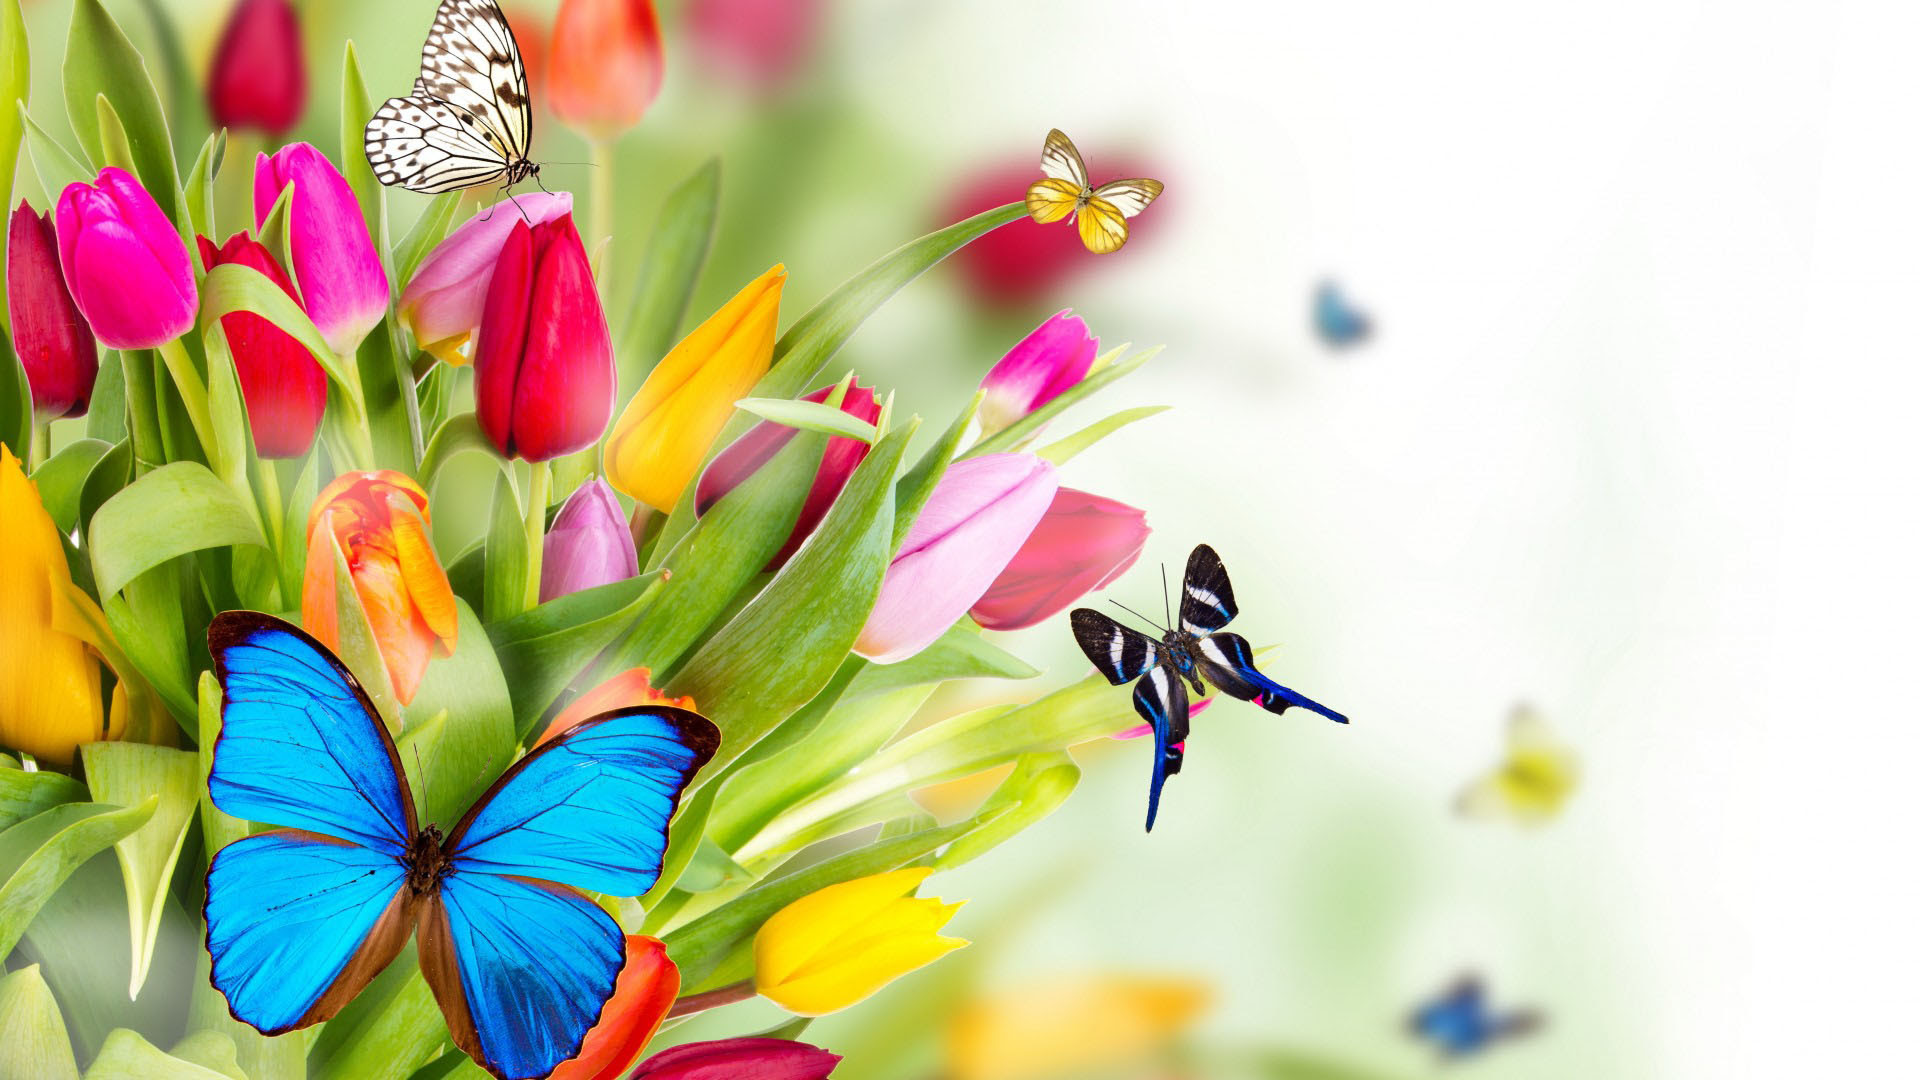 Beautiful Butterflies And Flowers Wallpapers 56 Images